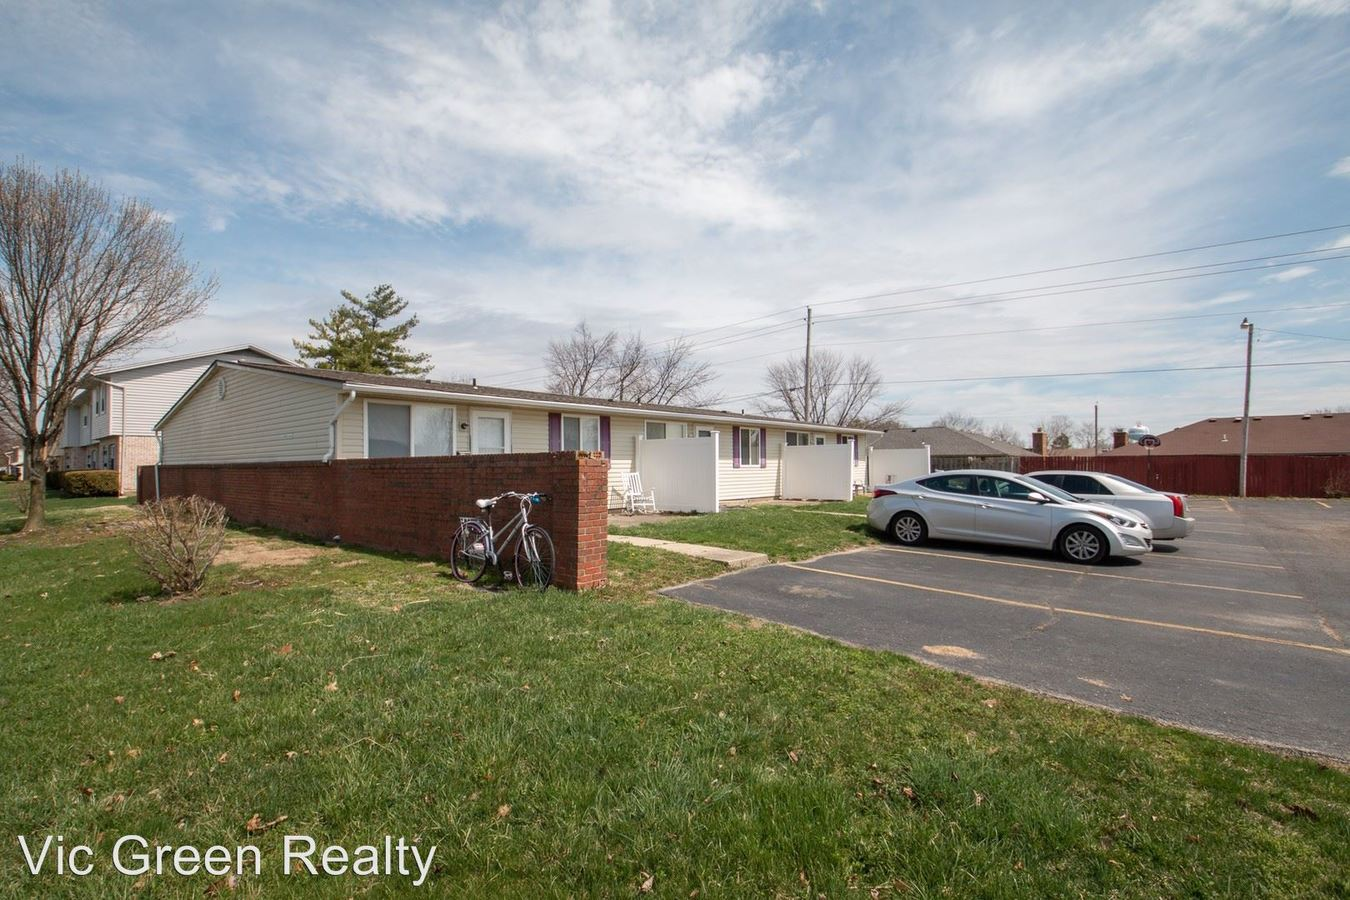 1 Bedroom 1 Bathroom Apartment for rent at 754 Randler Ave in Vandalia, OH